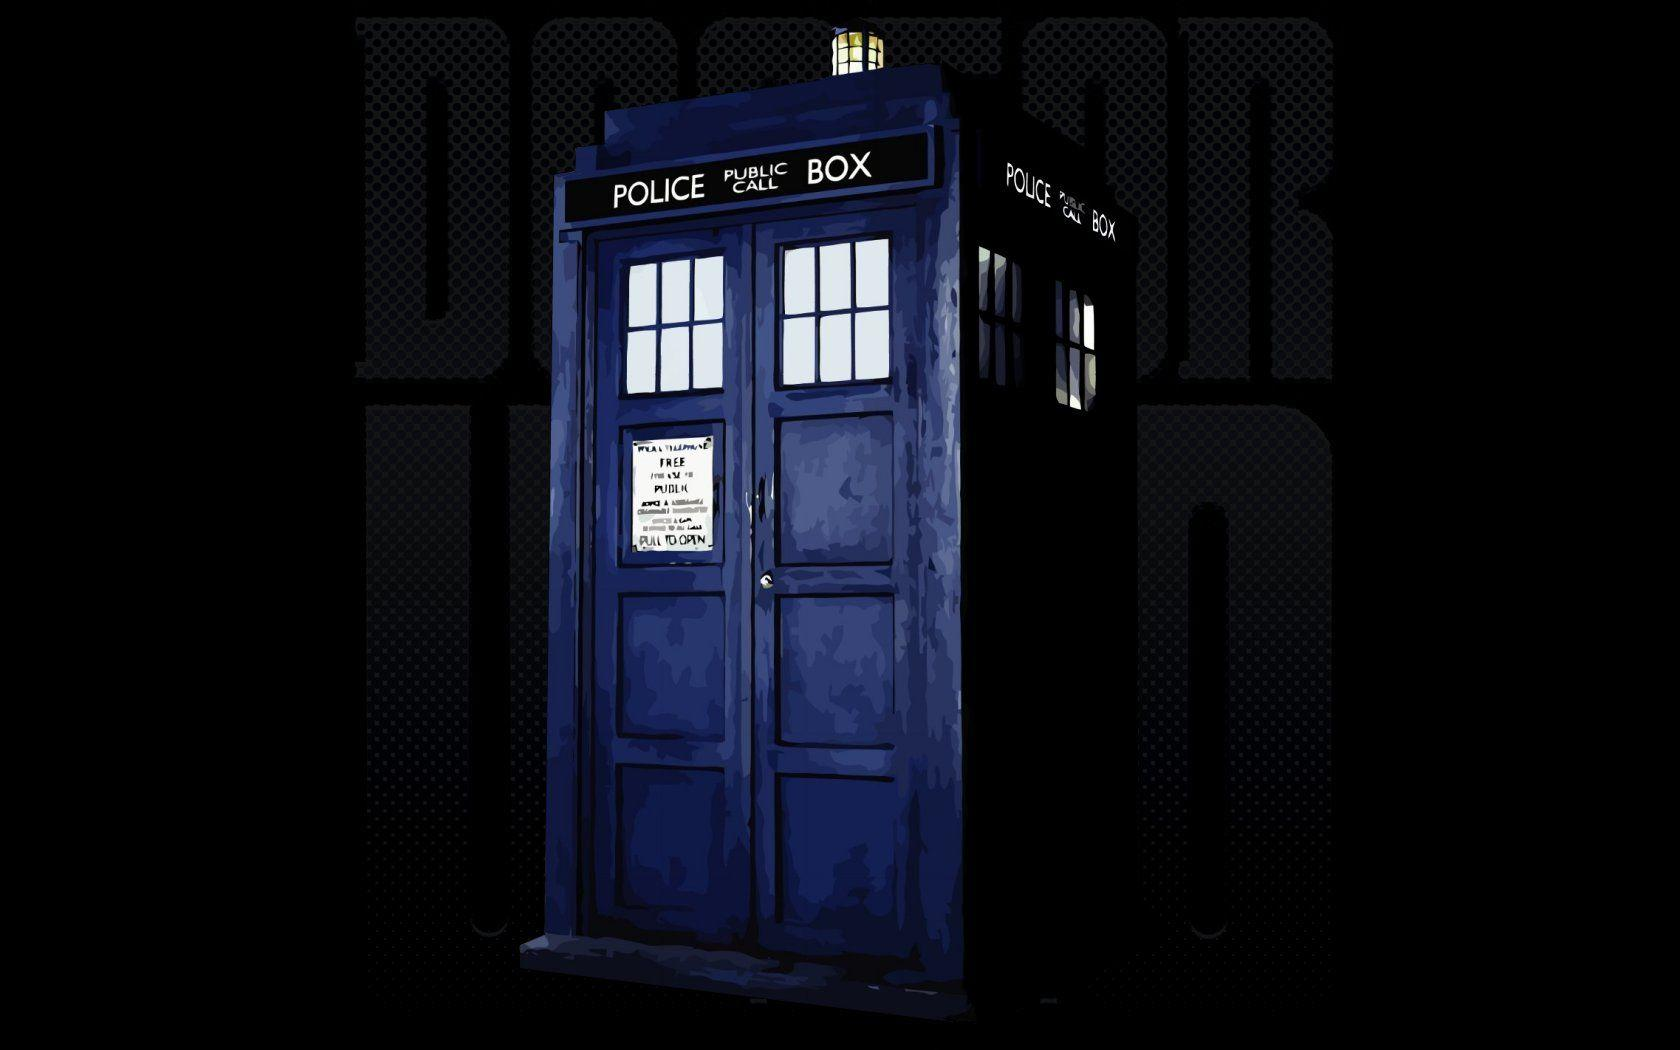 Doctor Who Wallpaper Mural New Tardis Interior Merchandise